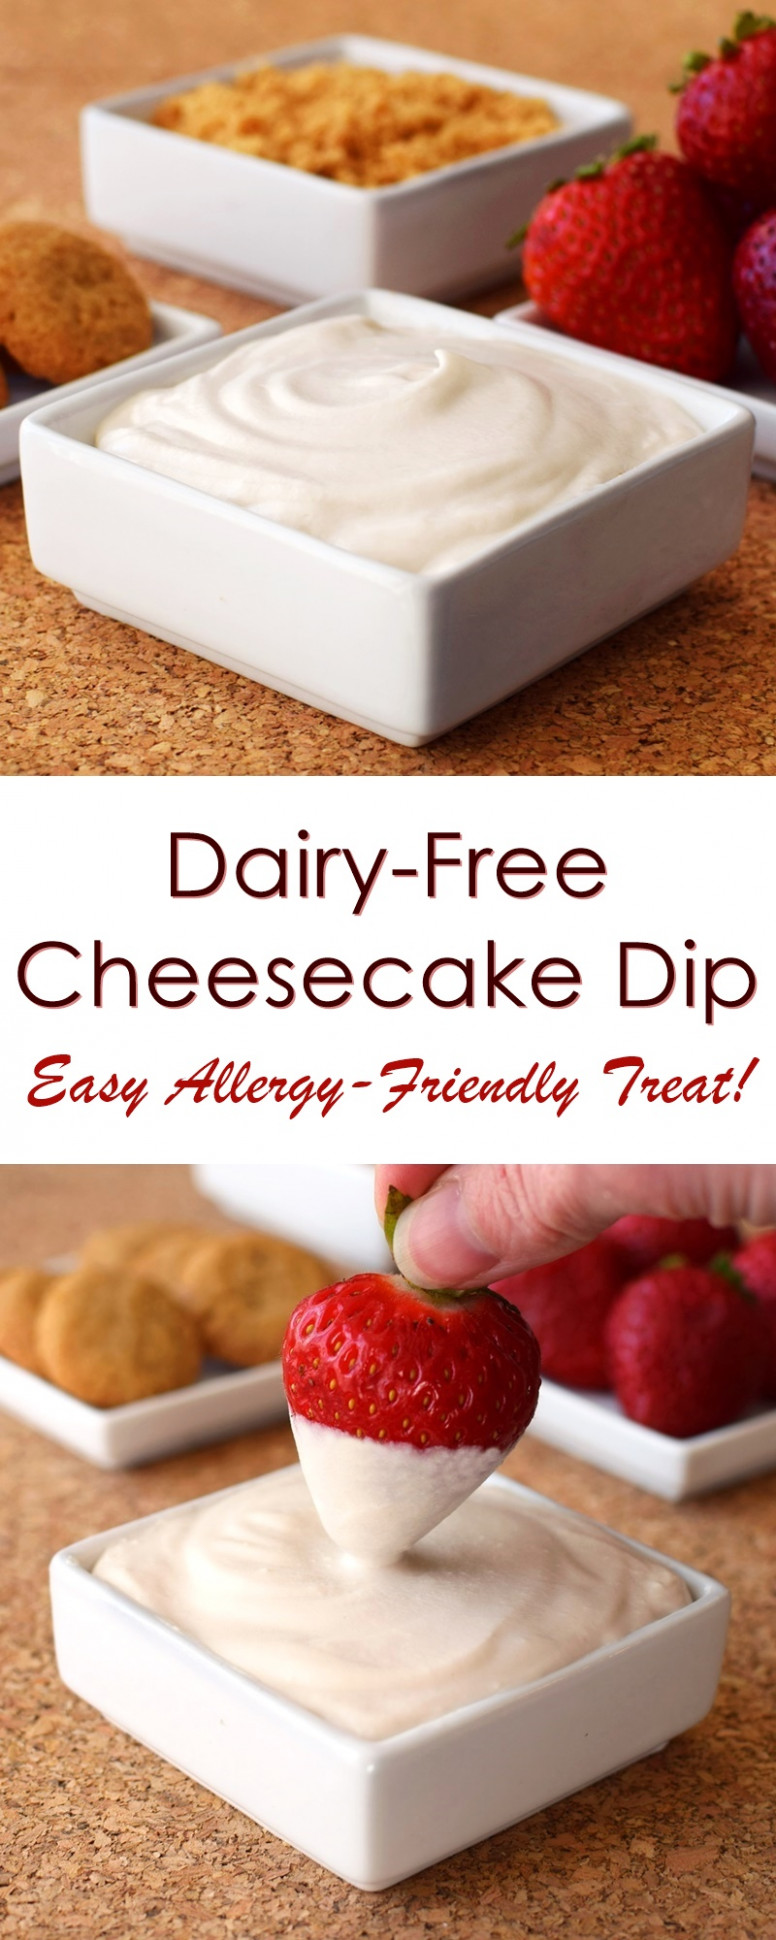 Dairy-Free Cheesecake Dip - recipes vegetarian dairy free